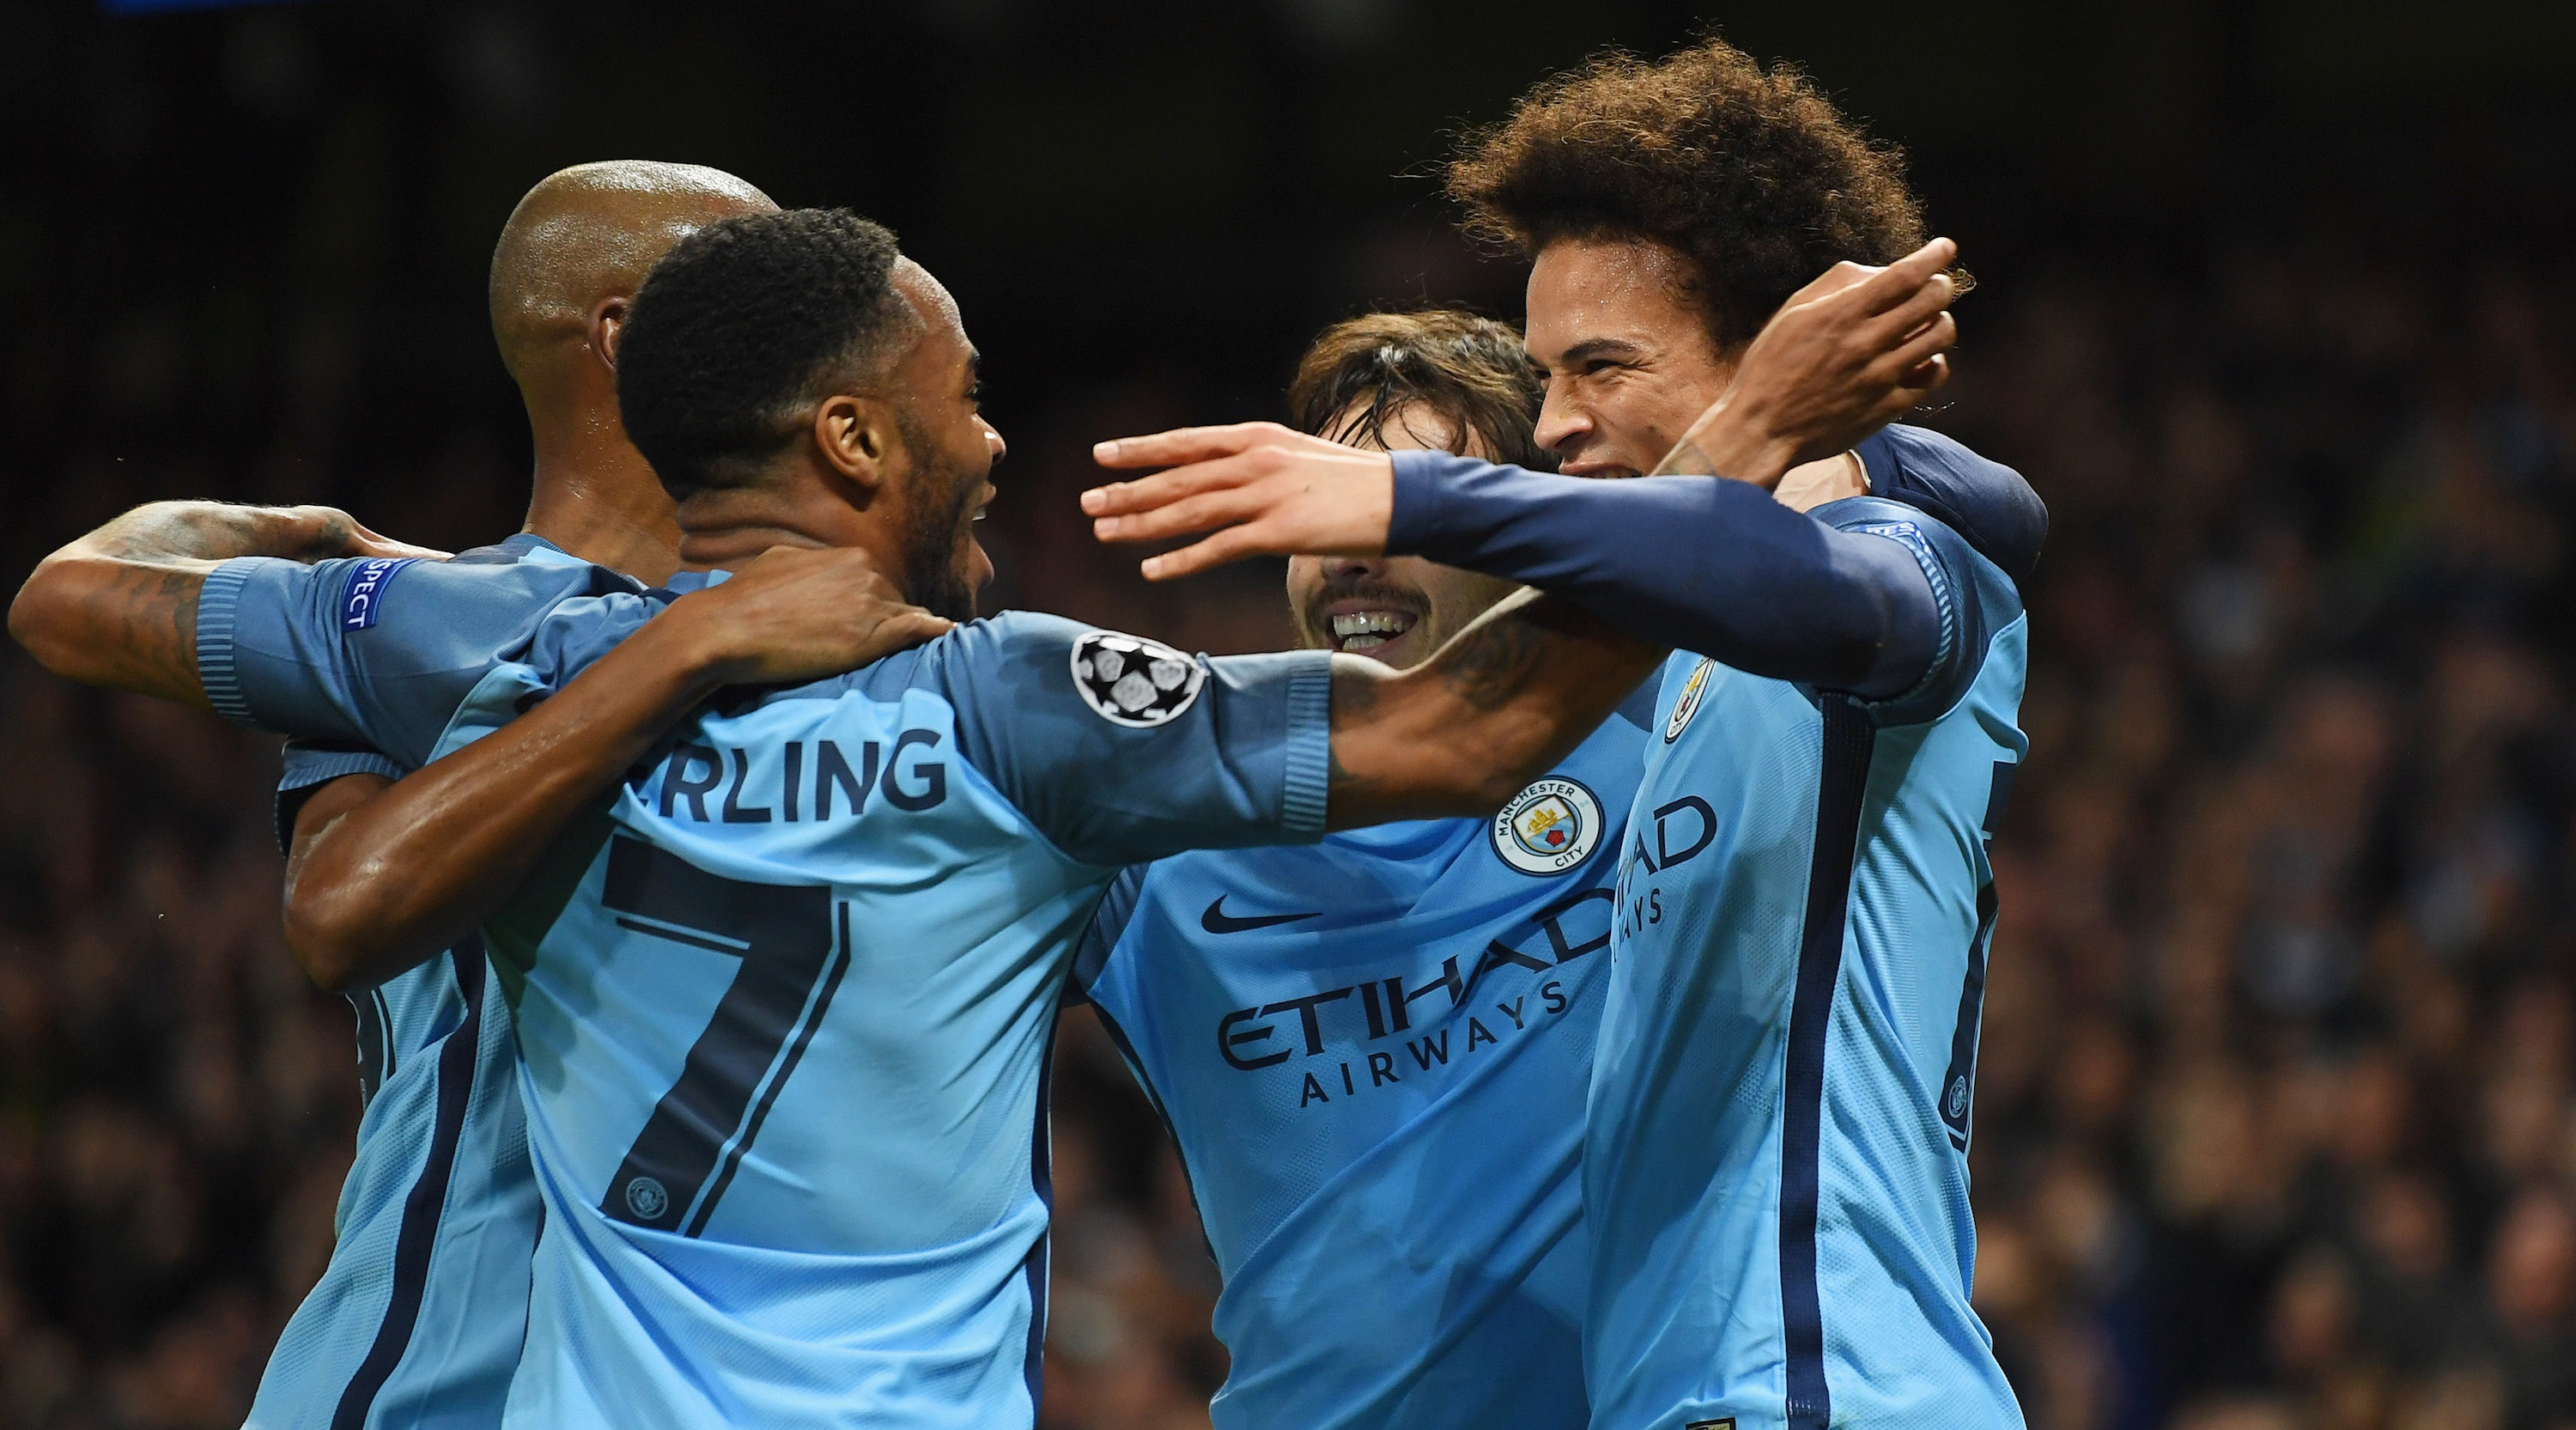 MANCHESTER, ENGLAND - FEBRUARY 21: Raheem Sterling of Manchester City (7) celebrates with team mates as he scores their first goal during the UEFA Champions League Round of 16 first leg match between Manchester City FC and AS Monaco at Etihad Stadium on February 21, 2017 in Manchester, United Kingdom. (Photo by Laurence Griffiths/Getty Images)